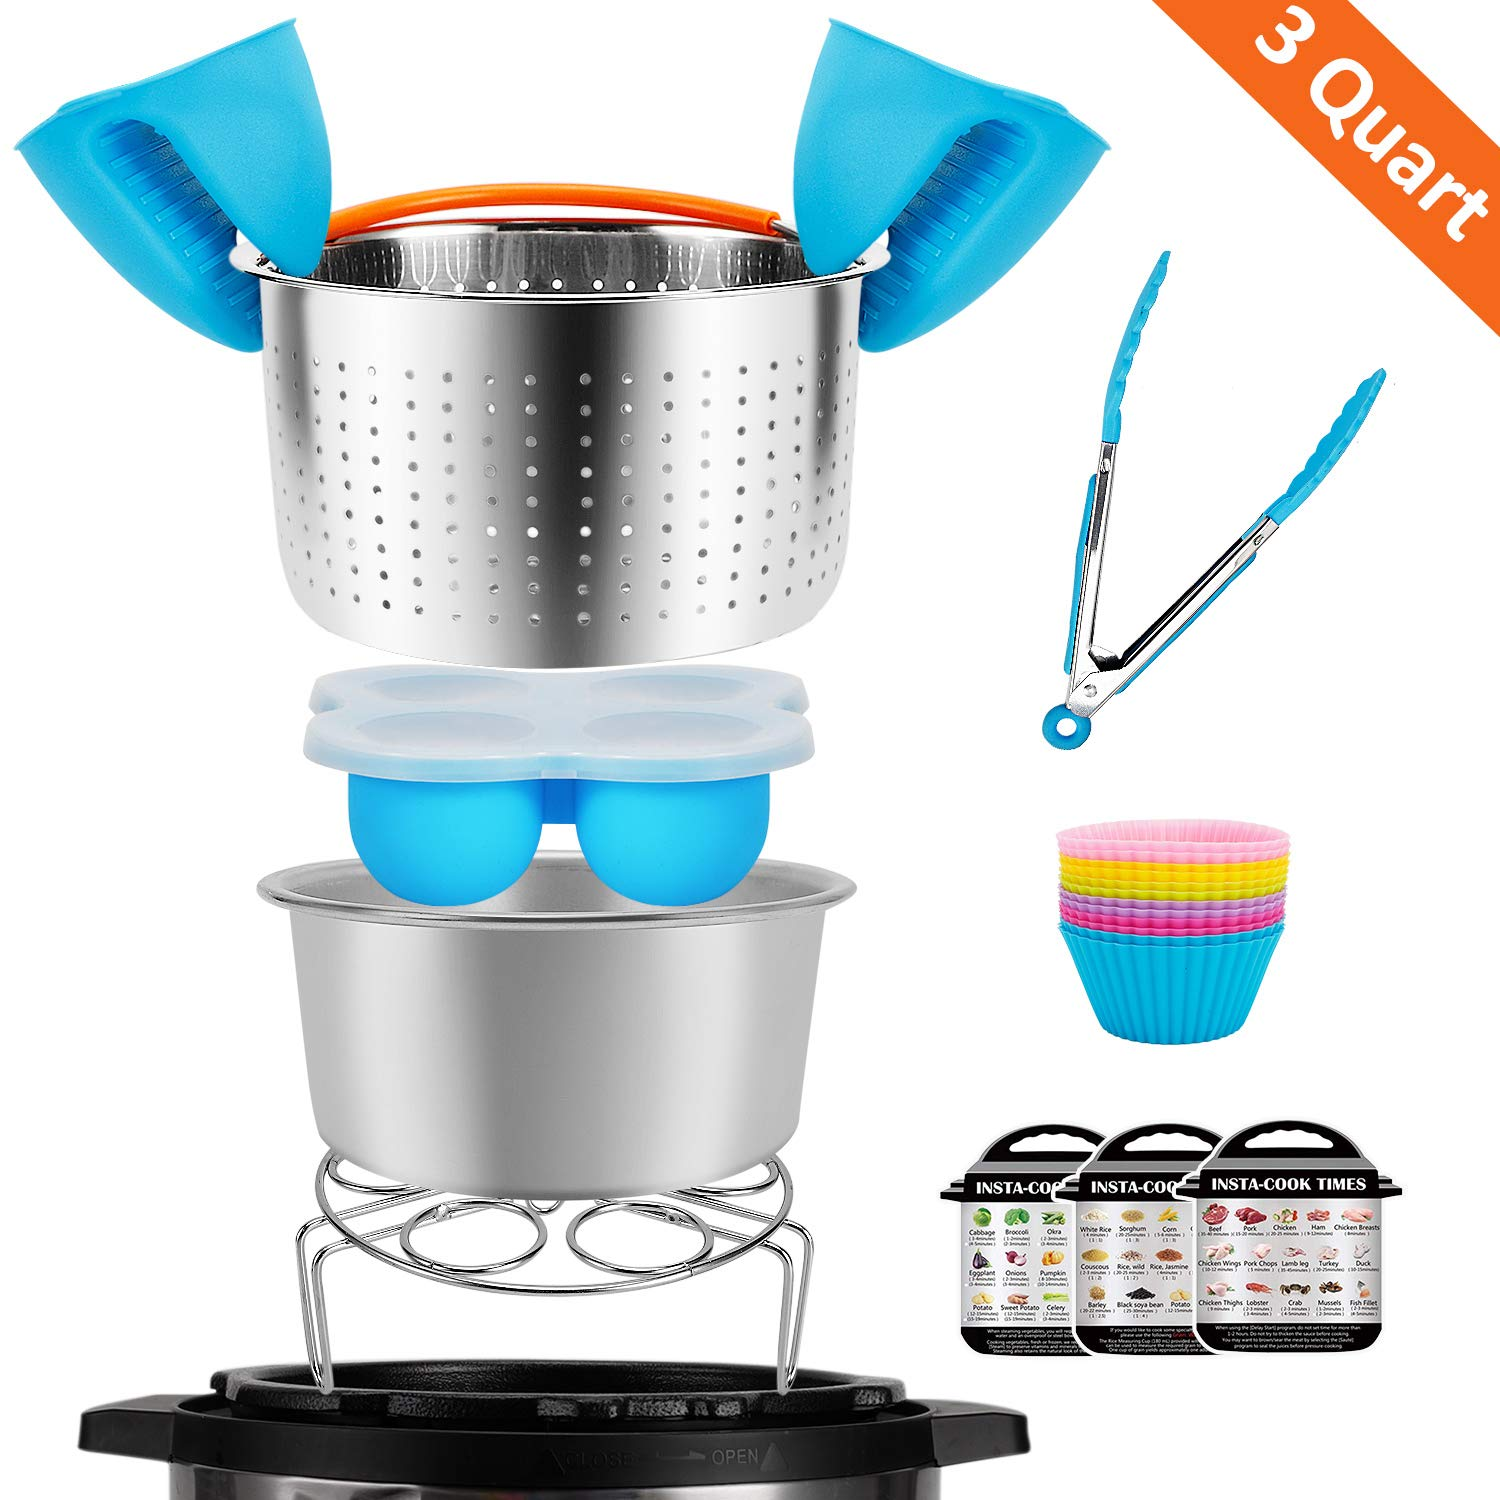 3 Quart Accessories Set Compatible with Instant Pot 3 Qt, Including Steam Basket,Silicone Egg Bites Molds,Springform Pan,Food Tongs,Egg Steamer Rack, Mini Mitts,Magnetic Sheet,Silicone baking cups